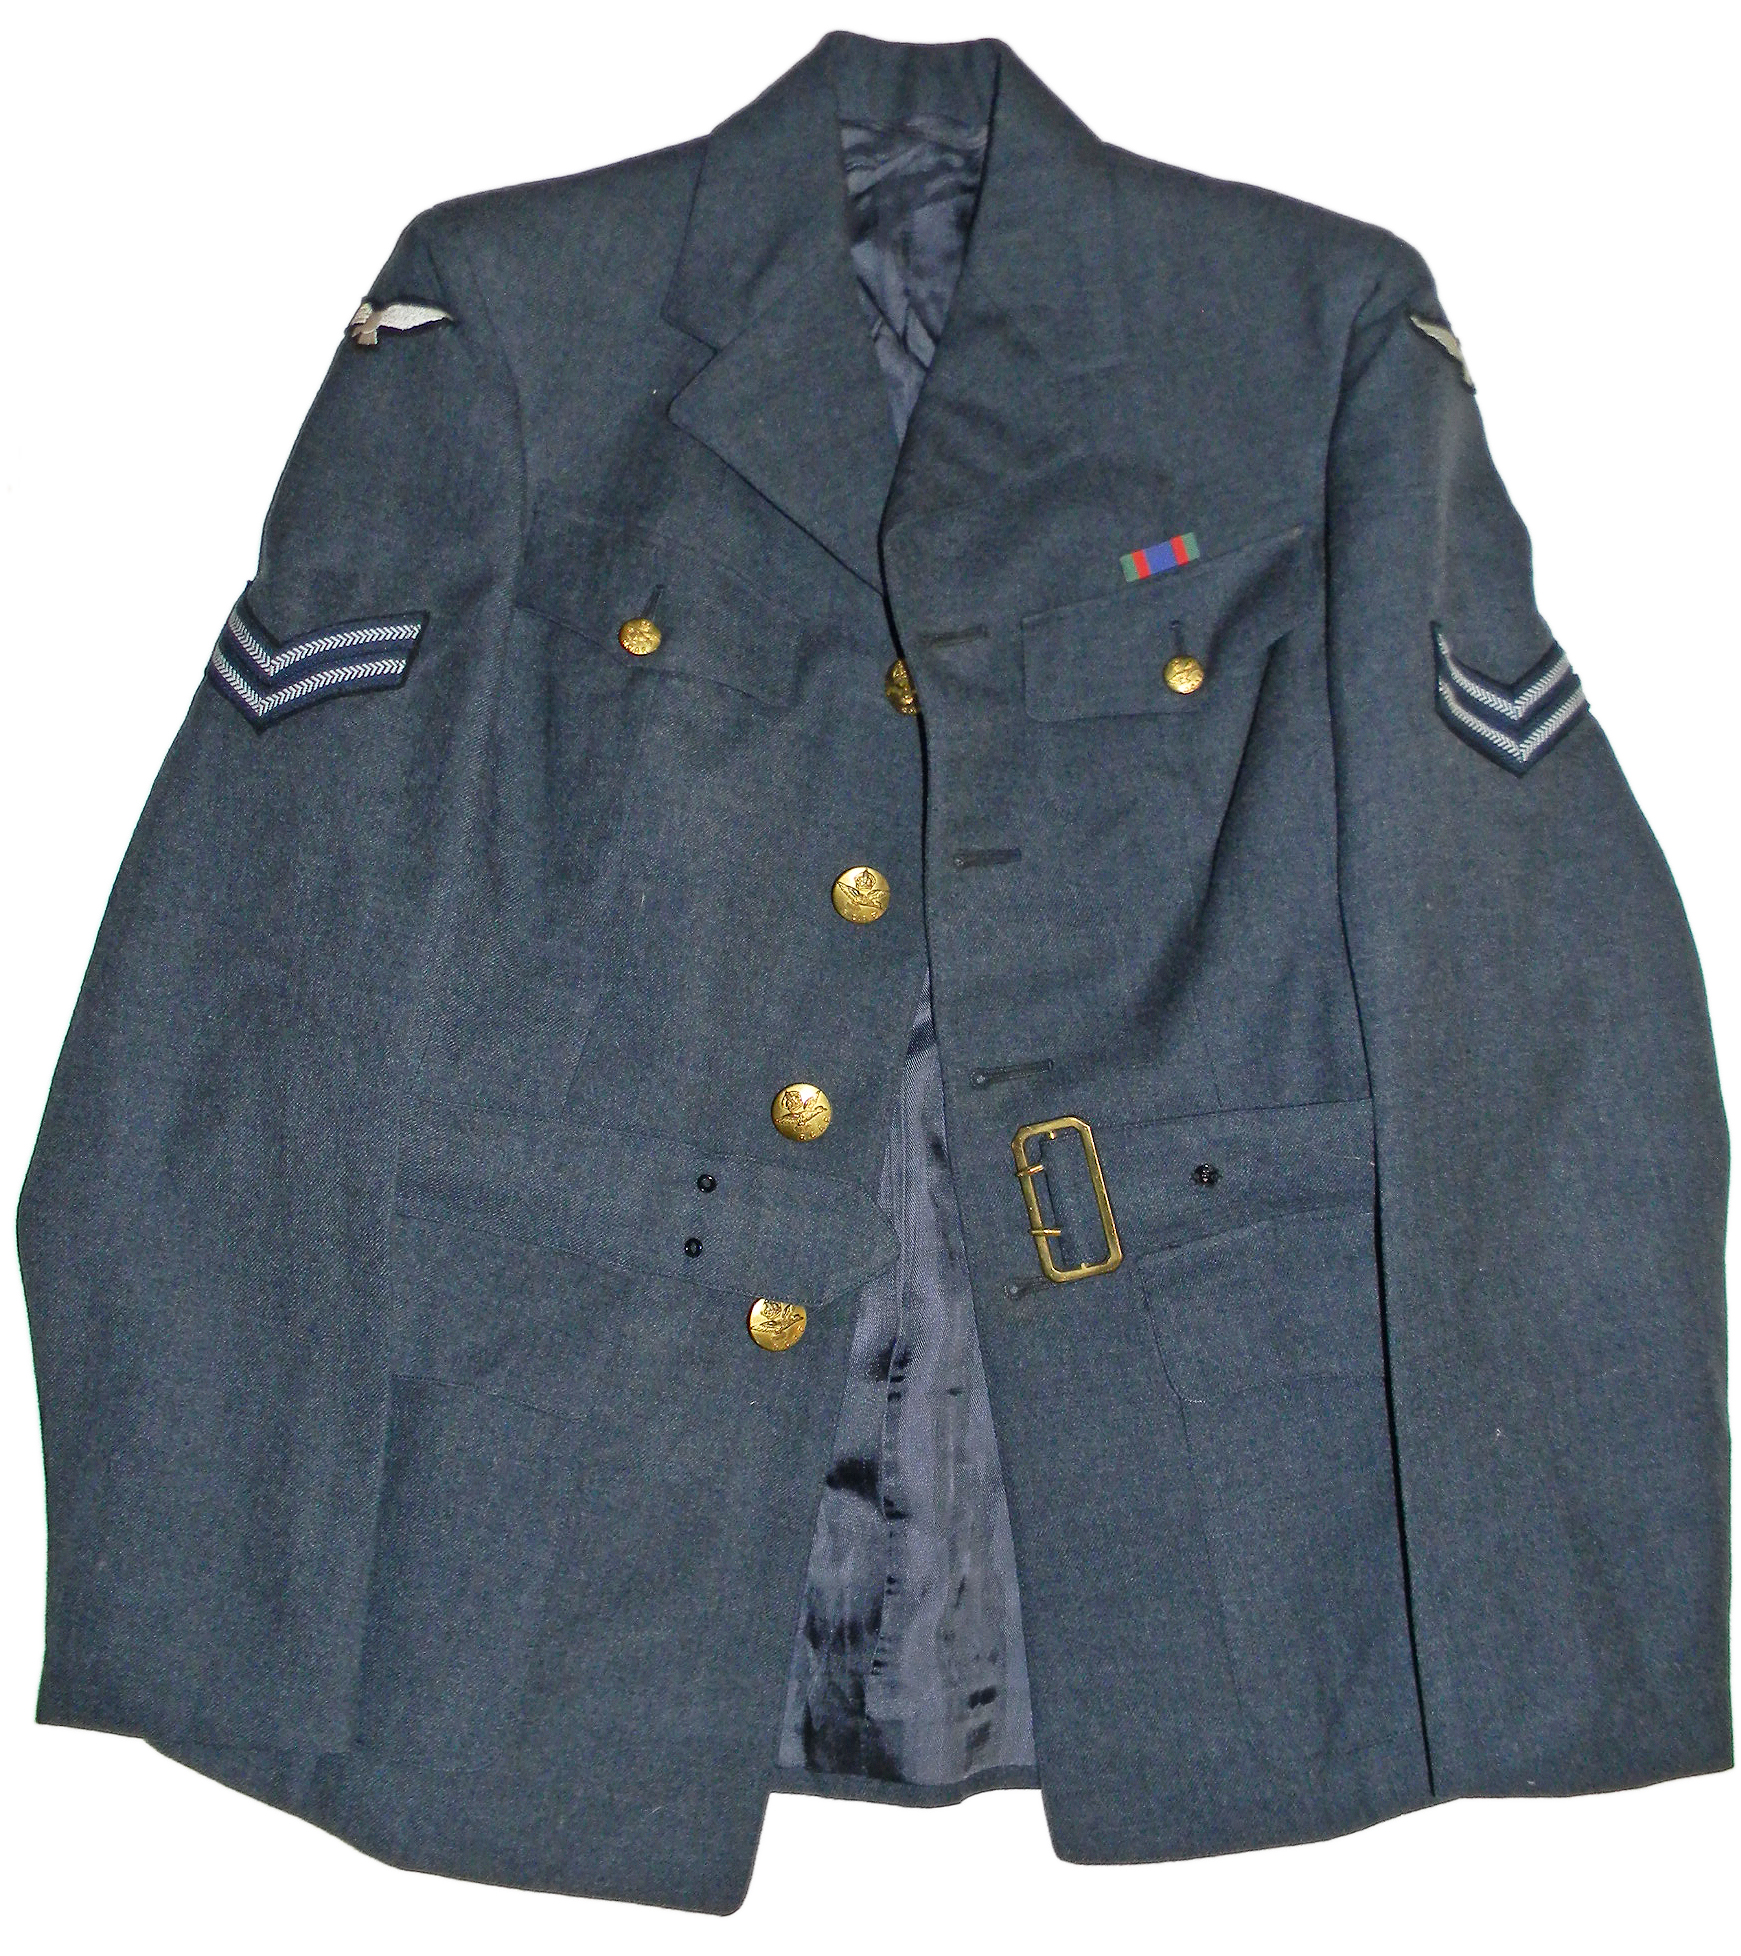 Canadian Women's Air Force uniform